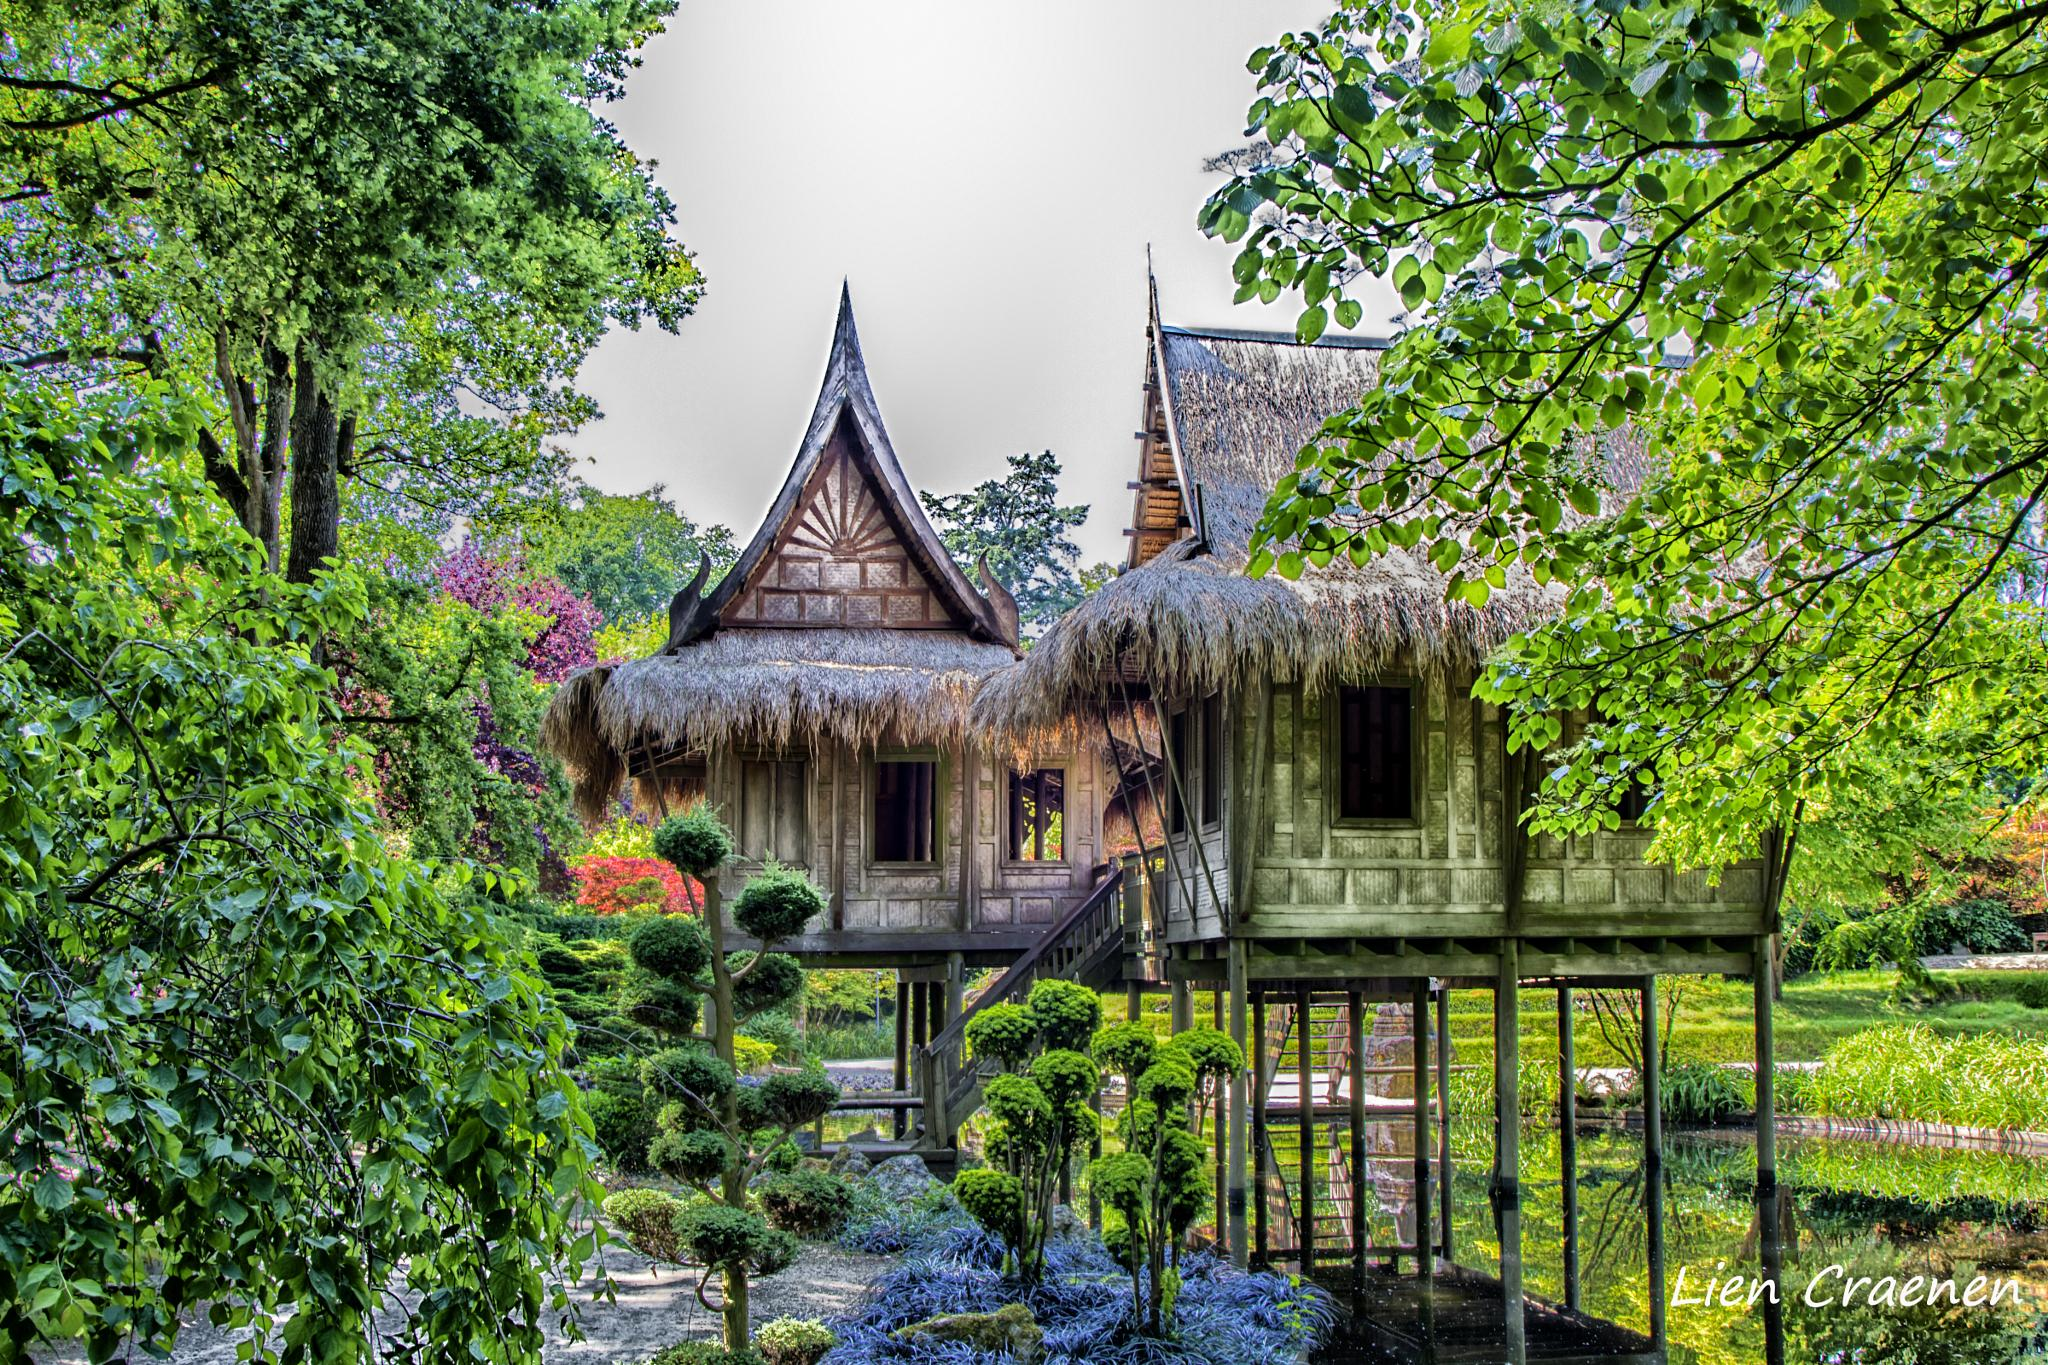 dreaming away in this little chinese garden by Lien Craenen